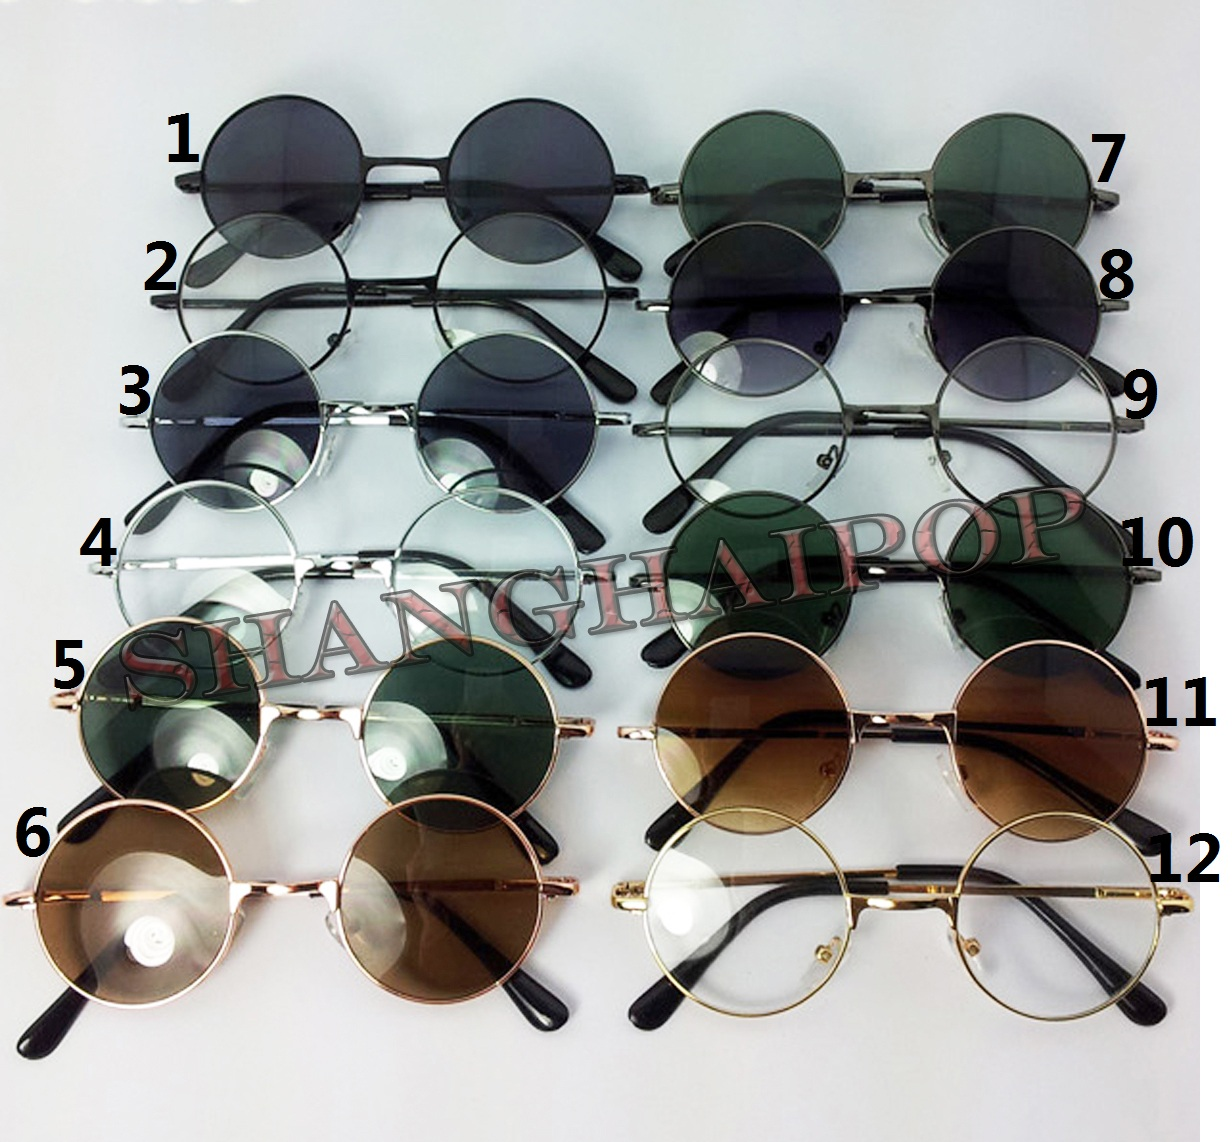 Penny-Round-Glasses-Sunglasses-Clear-Dark-Lens-Shades-Sunnies-John-Lennon-Small